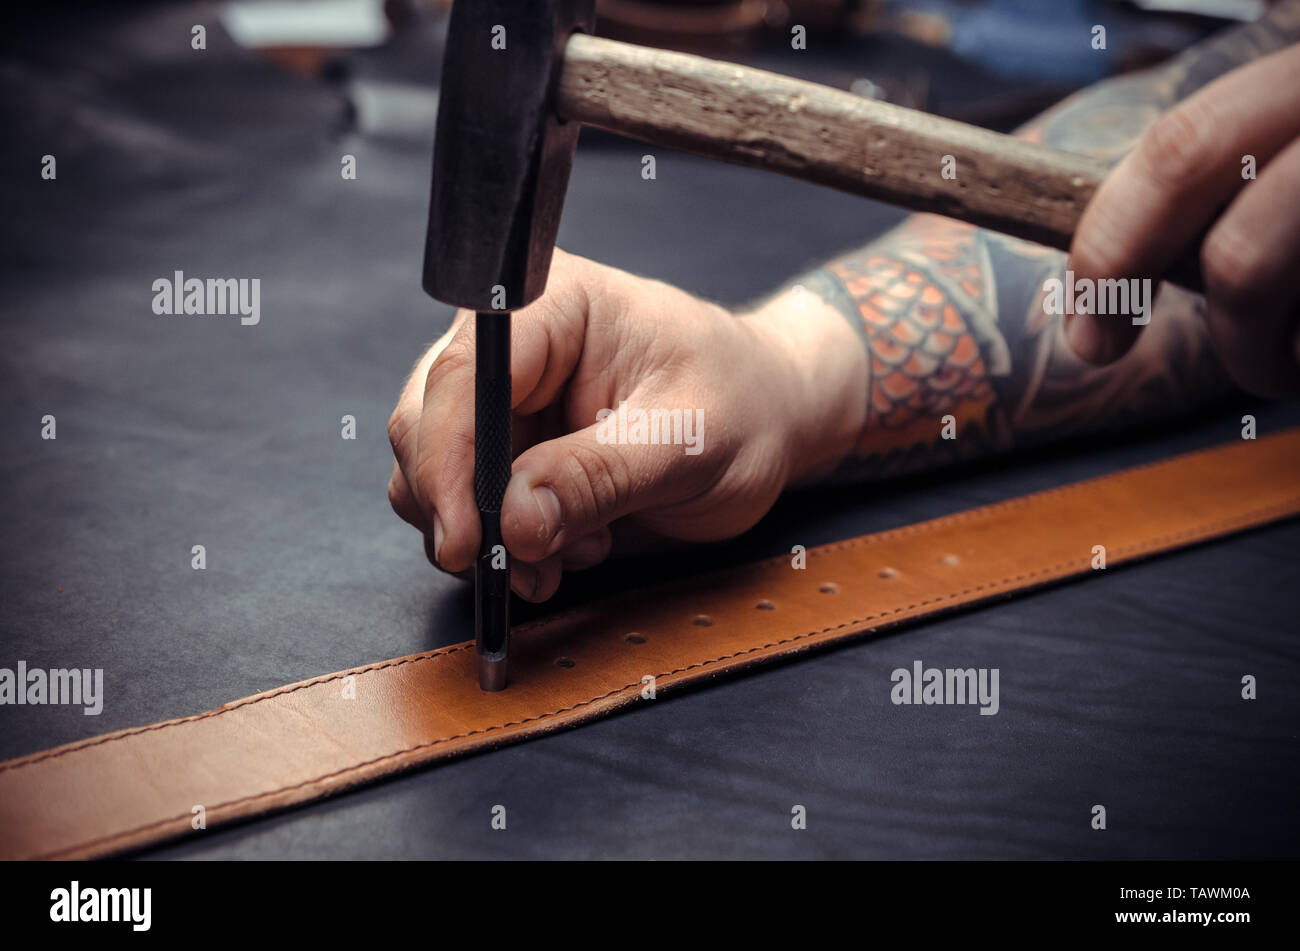 Leather workman manufacturing new leather product in leather shop. - Stock Image